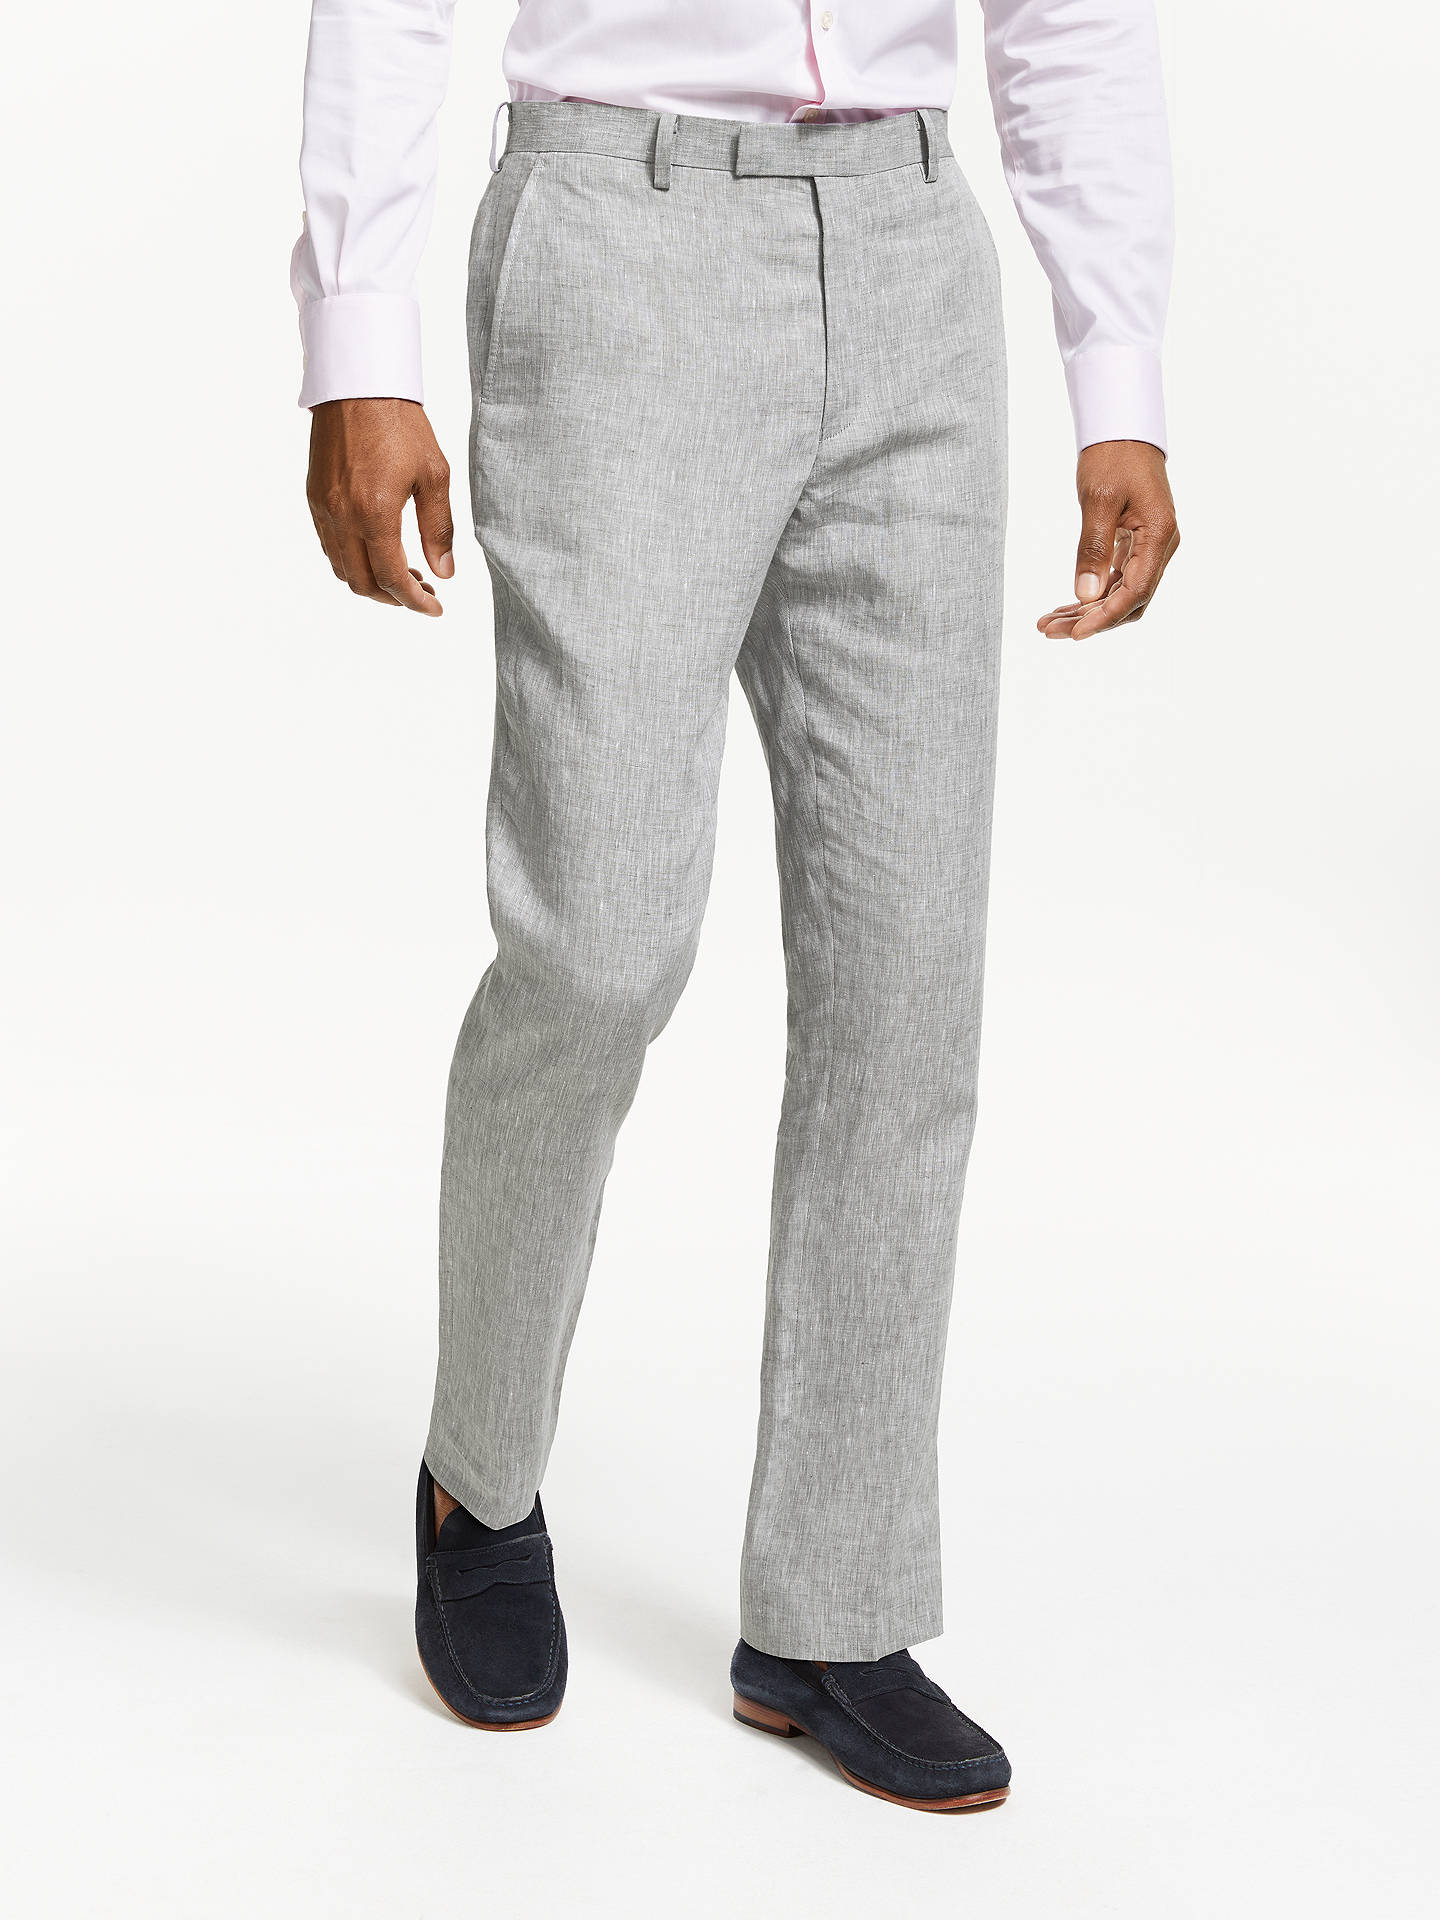 Buy John Lewis & Partners Linen Slim Fit Suit Trousers, Silver, 34L Online at johnlewis.com